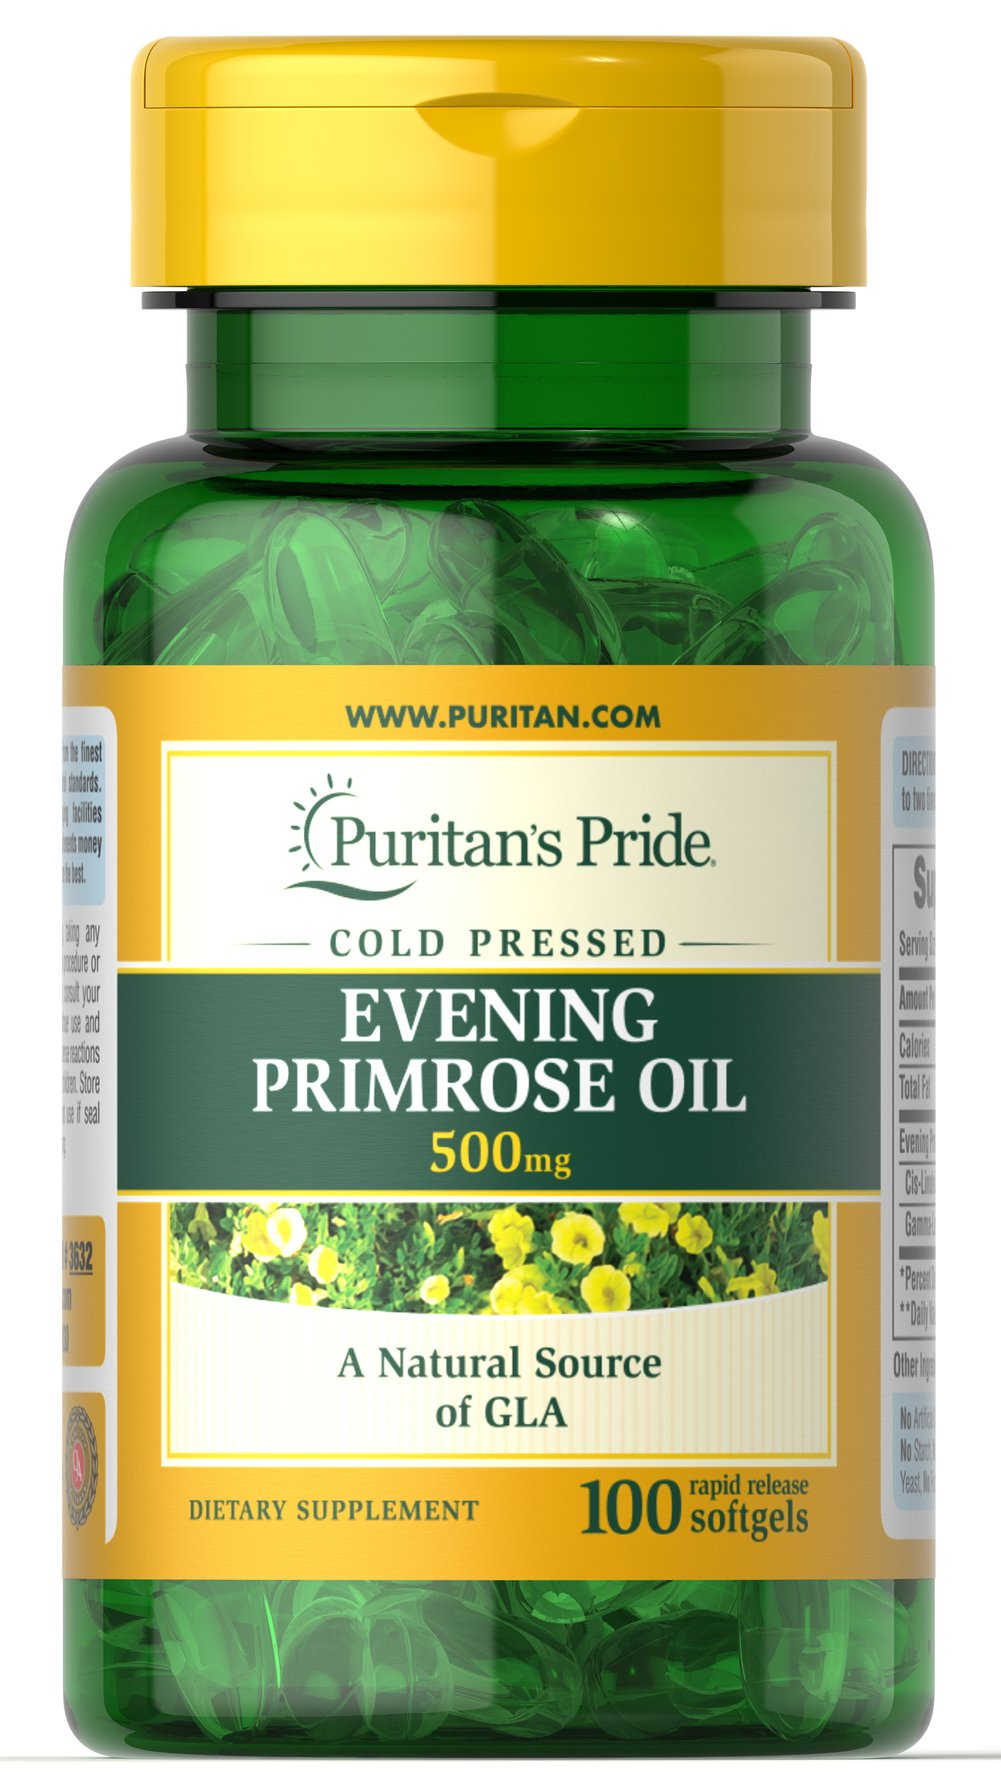 Evening Primrose Oil 500 mg with GLA  100 Softgels 500 mg $9.79